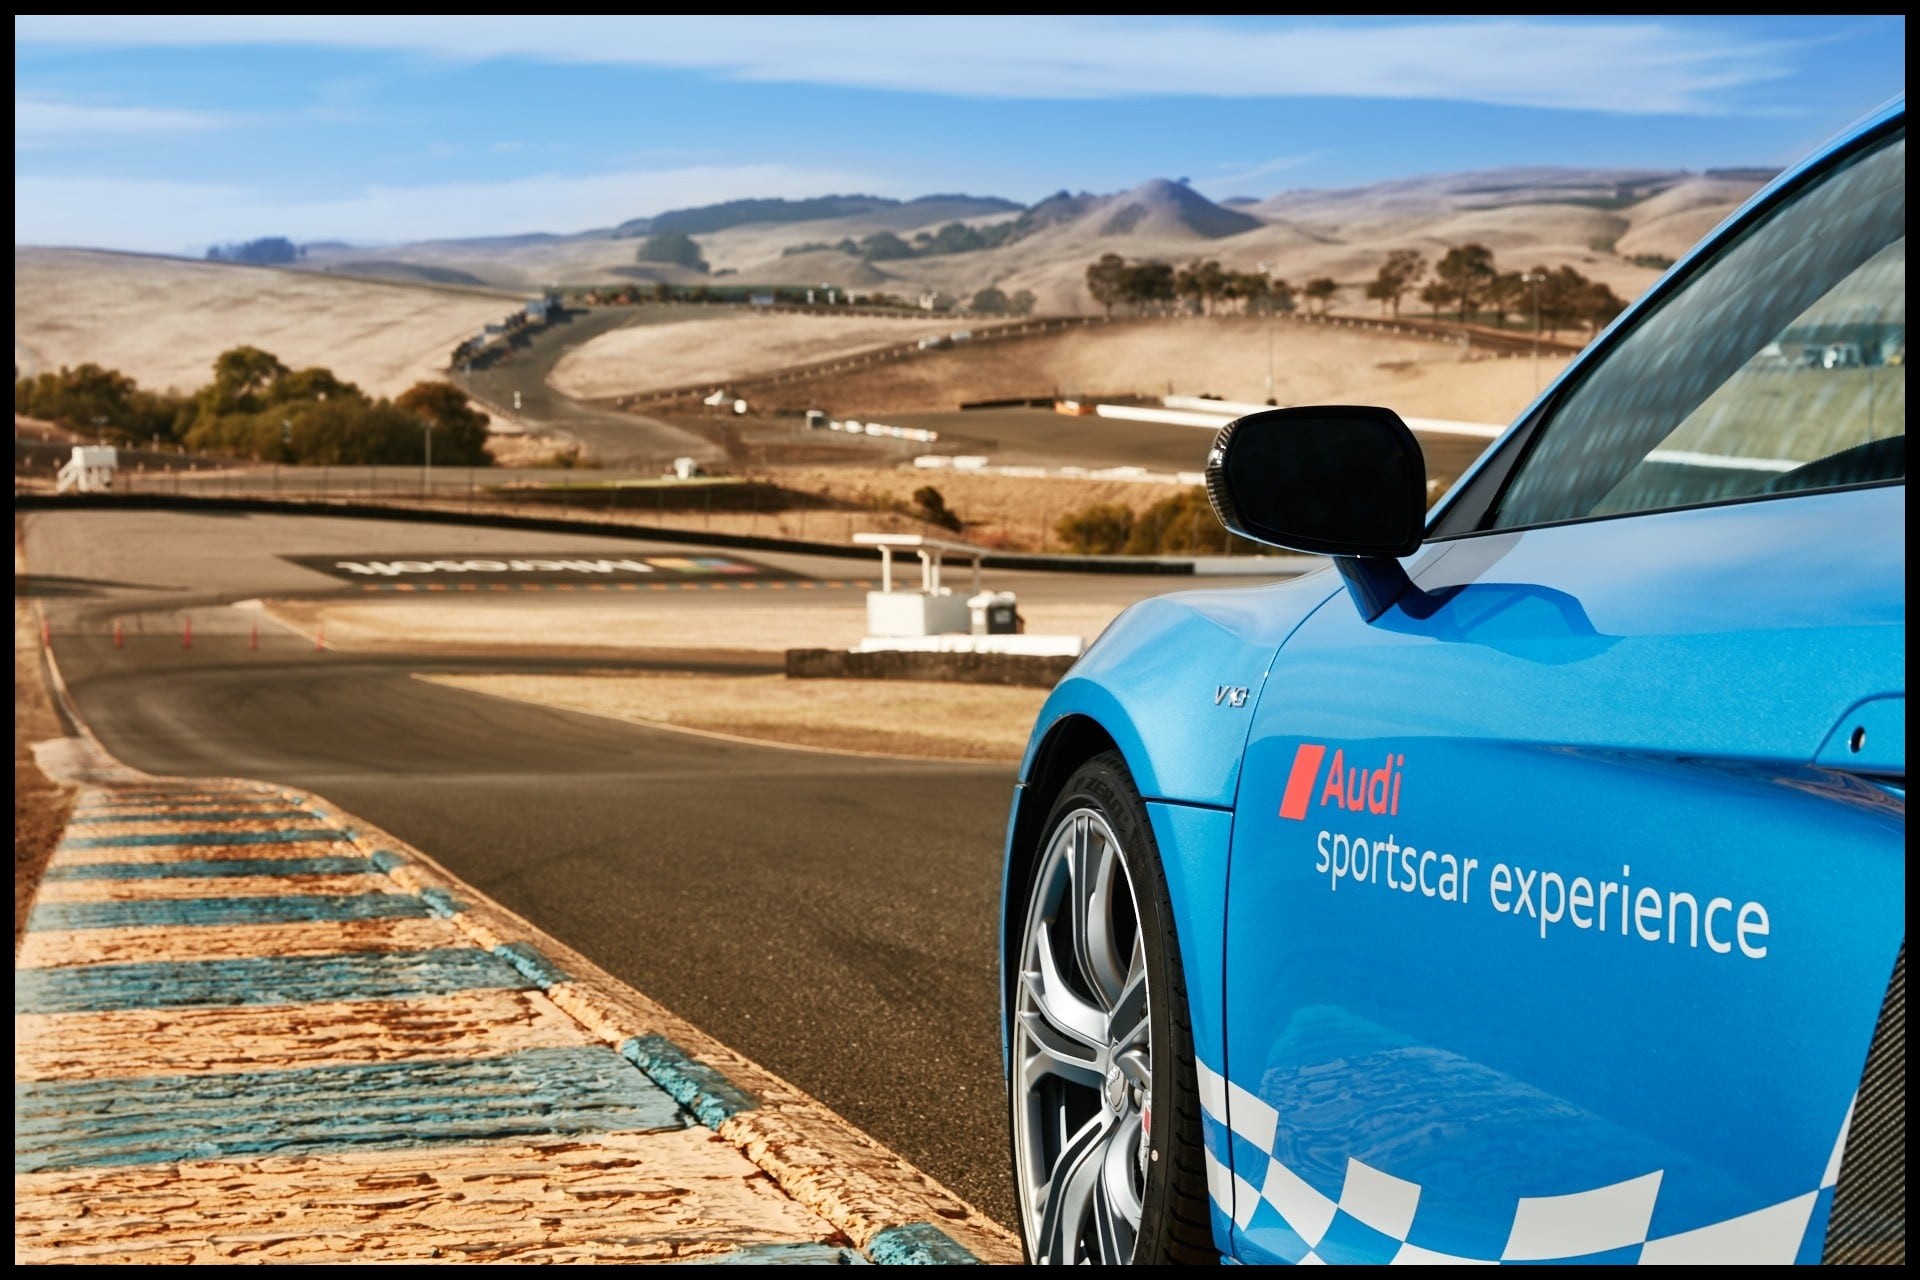 Audi Sportscar Experience R8 Driving Experience Image